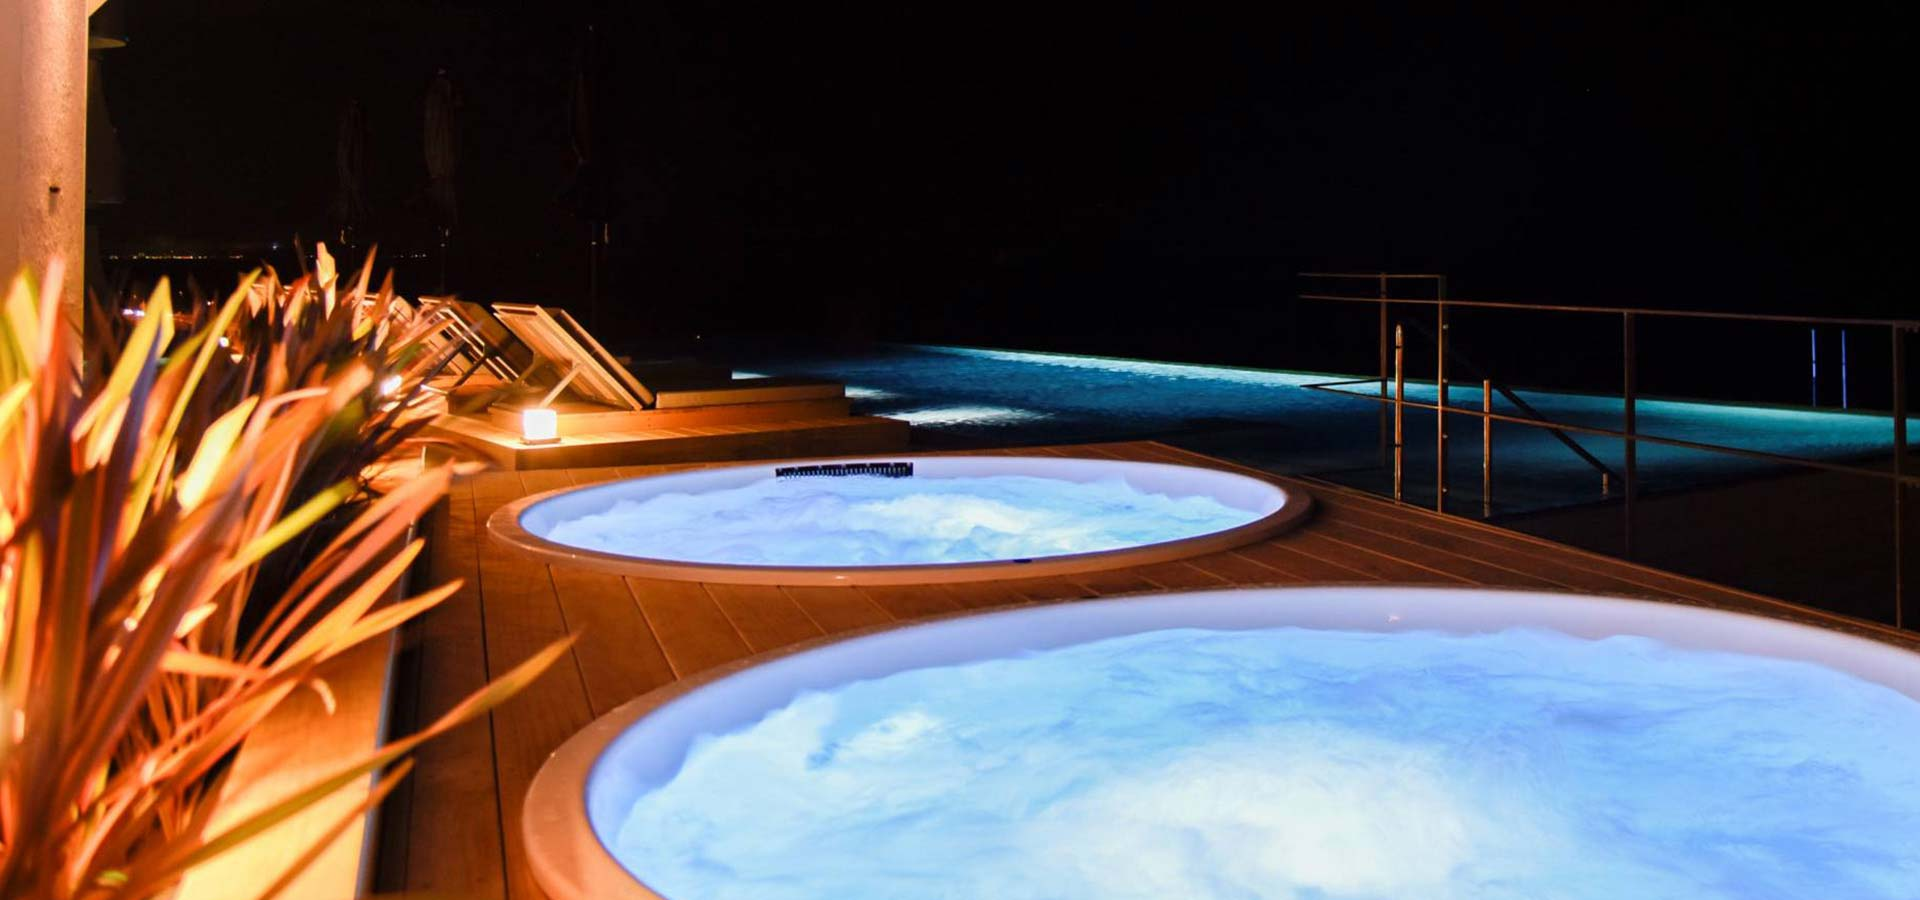 Thermal Spa S. Wave